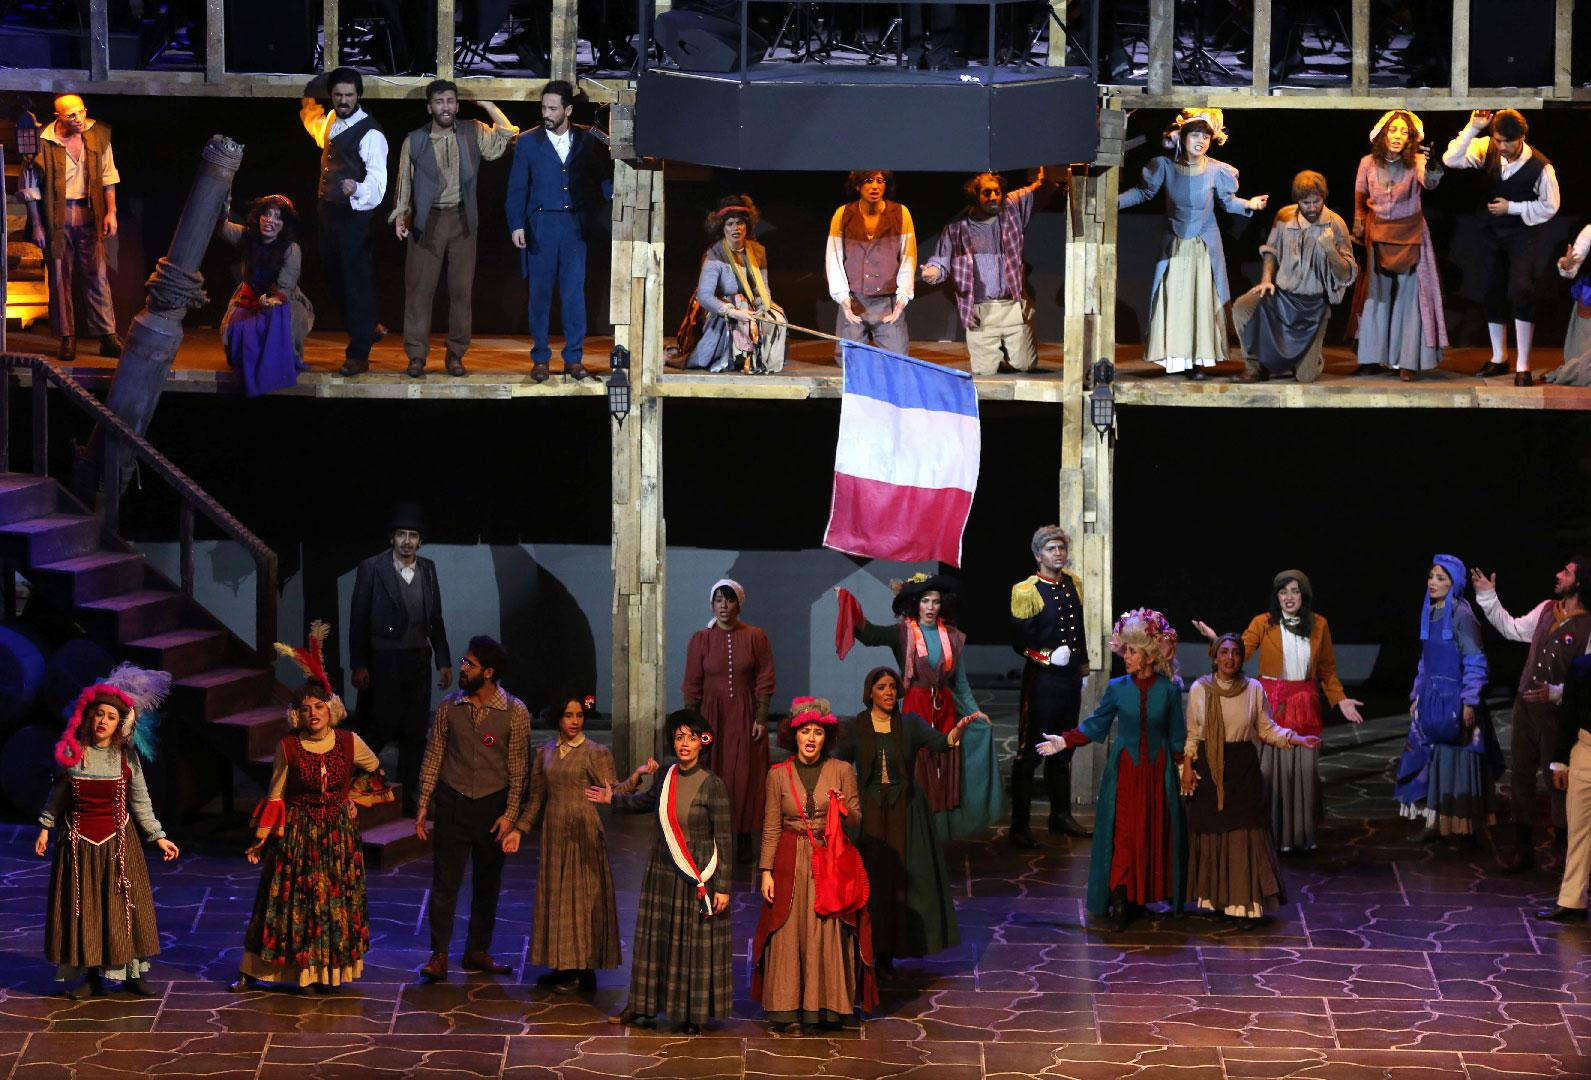 A scene from the musical production Les Miserables, performed by Iranian artists at the Espinas Hotel in the capital Tehran on December 3, 2018.